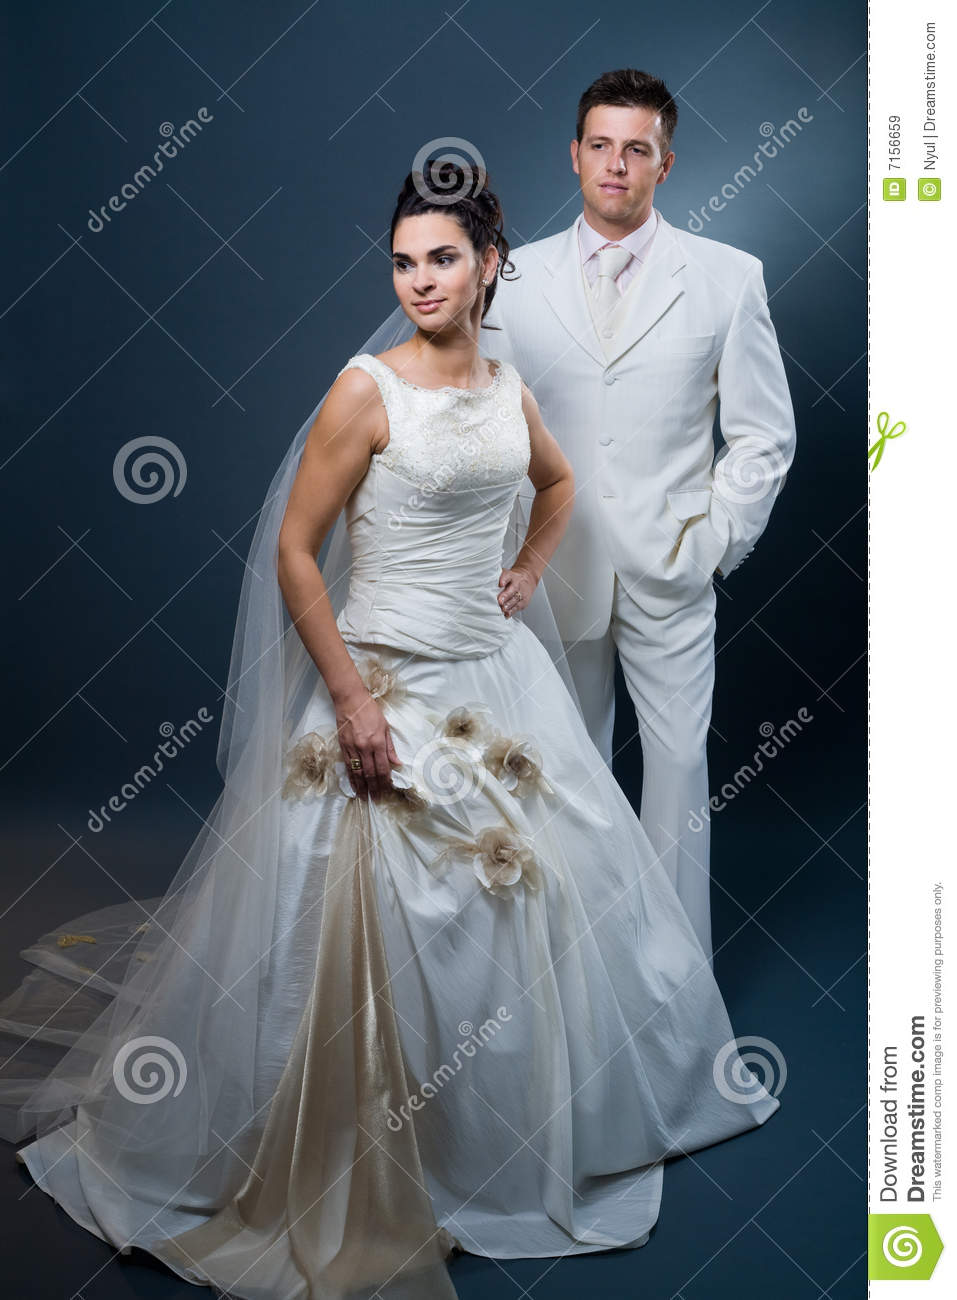 Bride And Groom In Wedding Dress Stock Image - Image of celebration ...